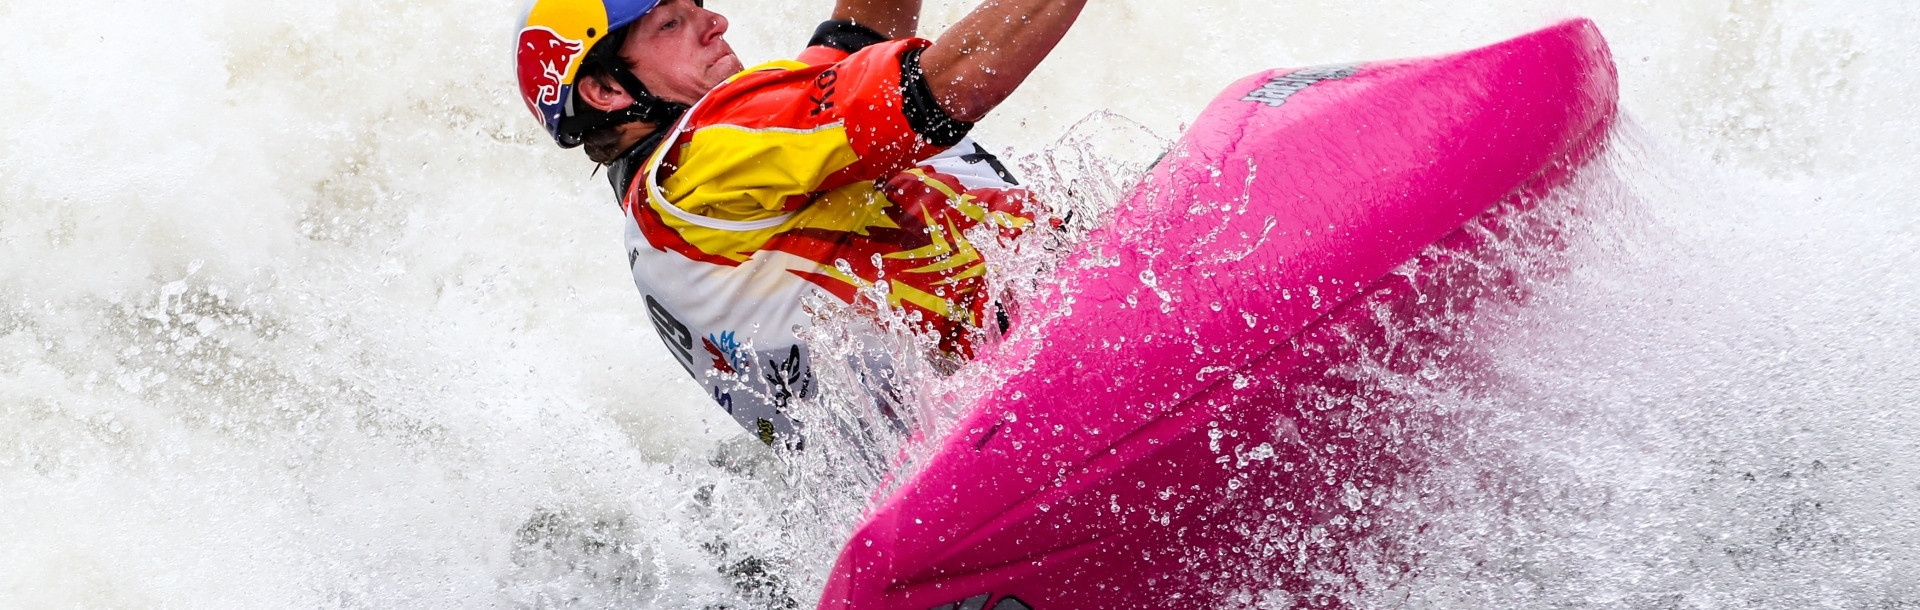 Dane Jackson will be looking to underline his reputation as the world's most exciting kayaker at the ICF Canoe Freestyle World Championships ©ICF